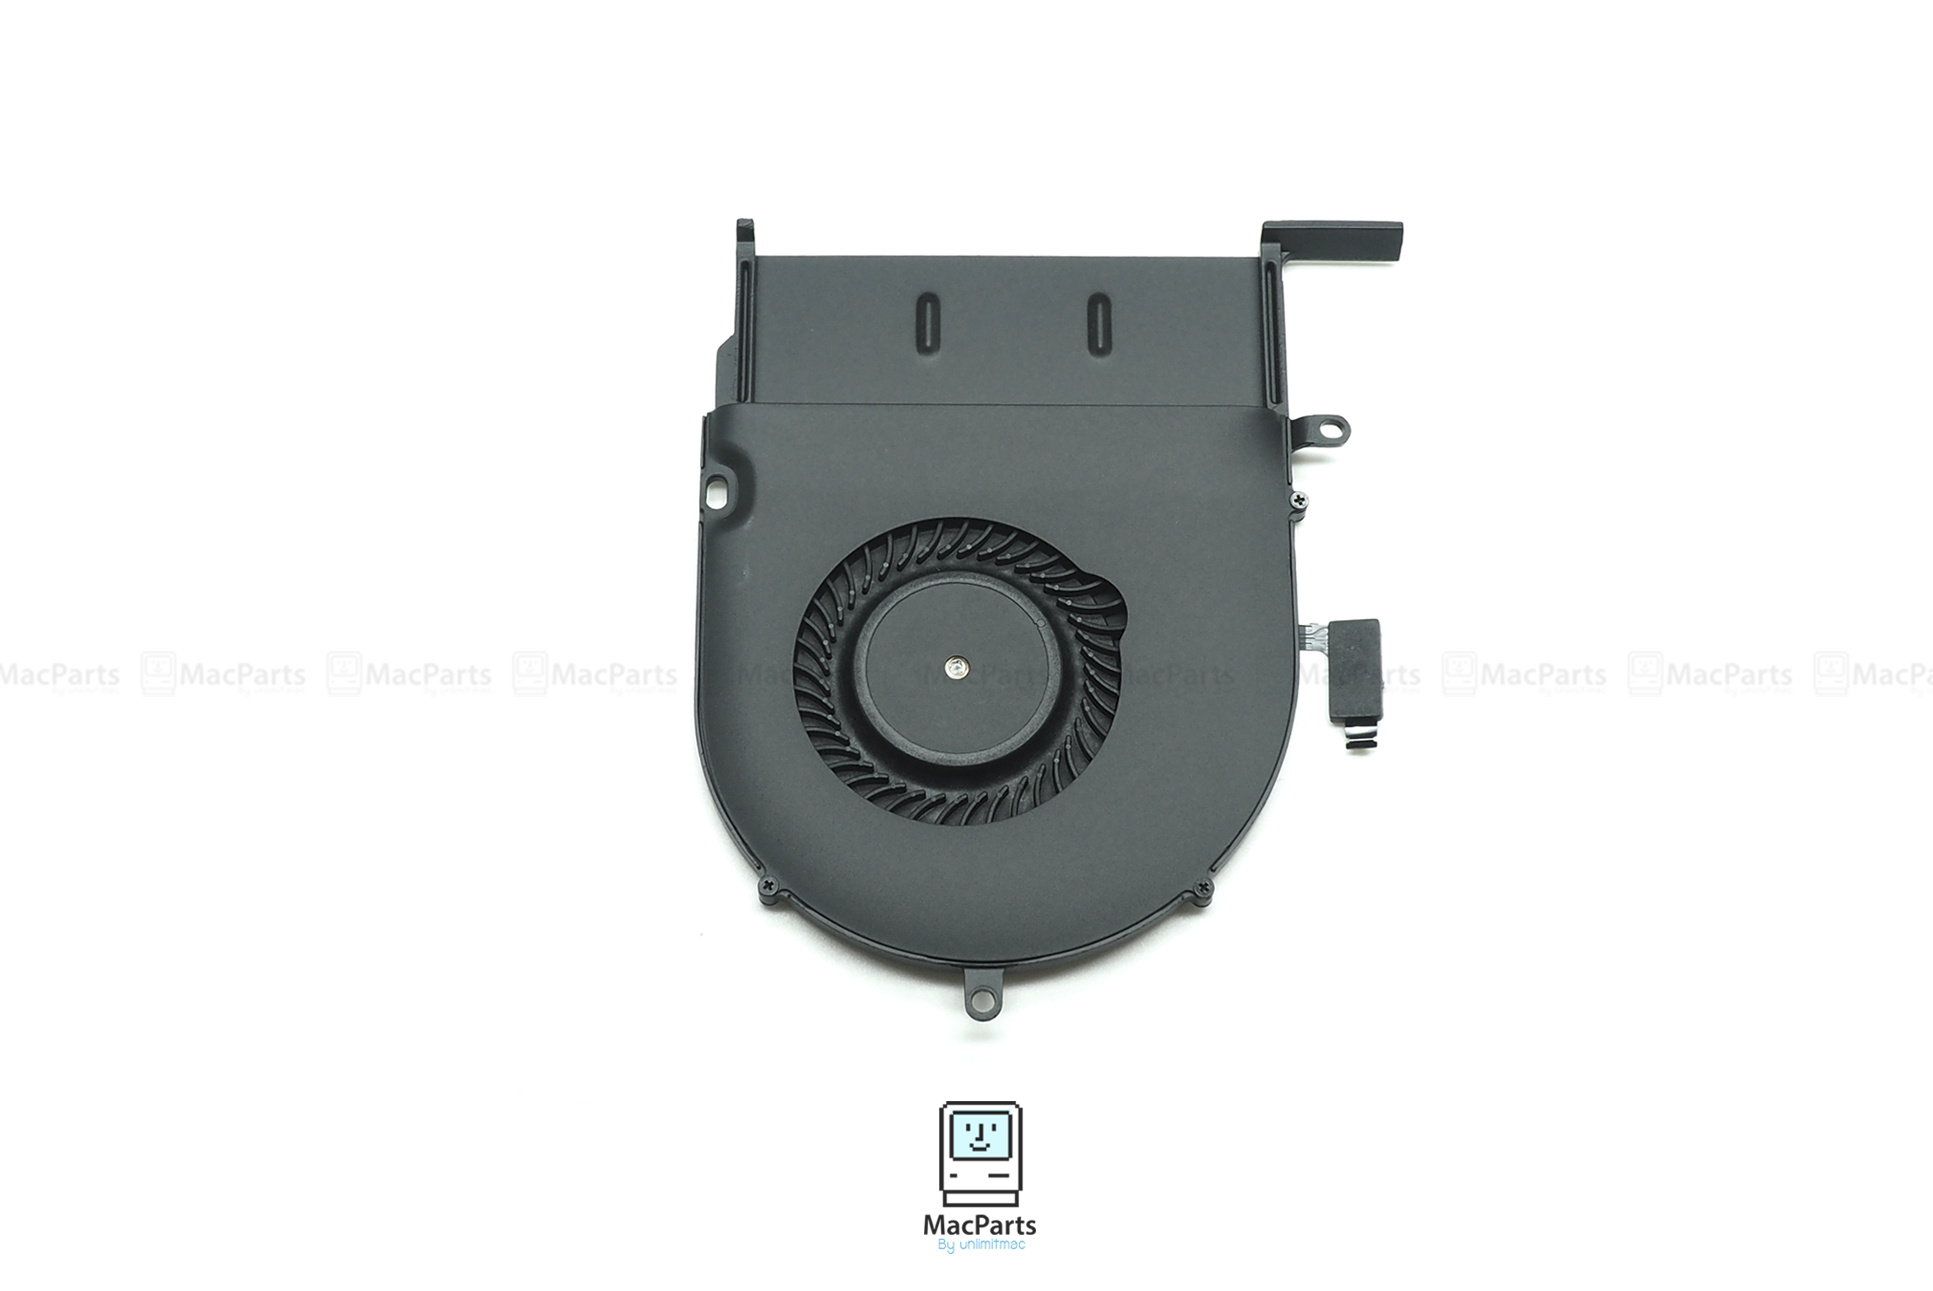 076-1450 Fan A1502 , For MacBook Pro (Retina, 13-inch,Late 2013) MacBook Pro (Retina, 13-inch, Mid 2014) , พัดลม MacBook Pro (Retina, 13-inch,Late 2013) MacBook Pro (Retina, 13-inch, Mid 2014)